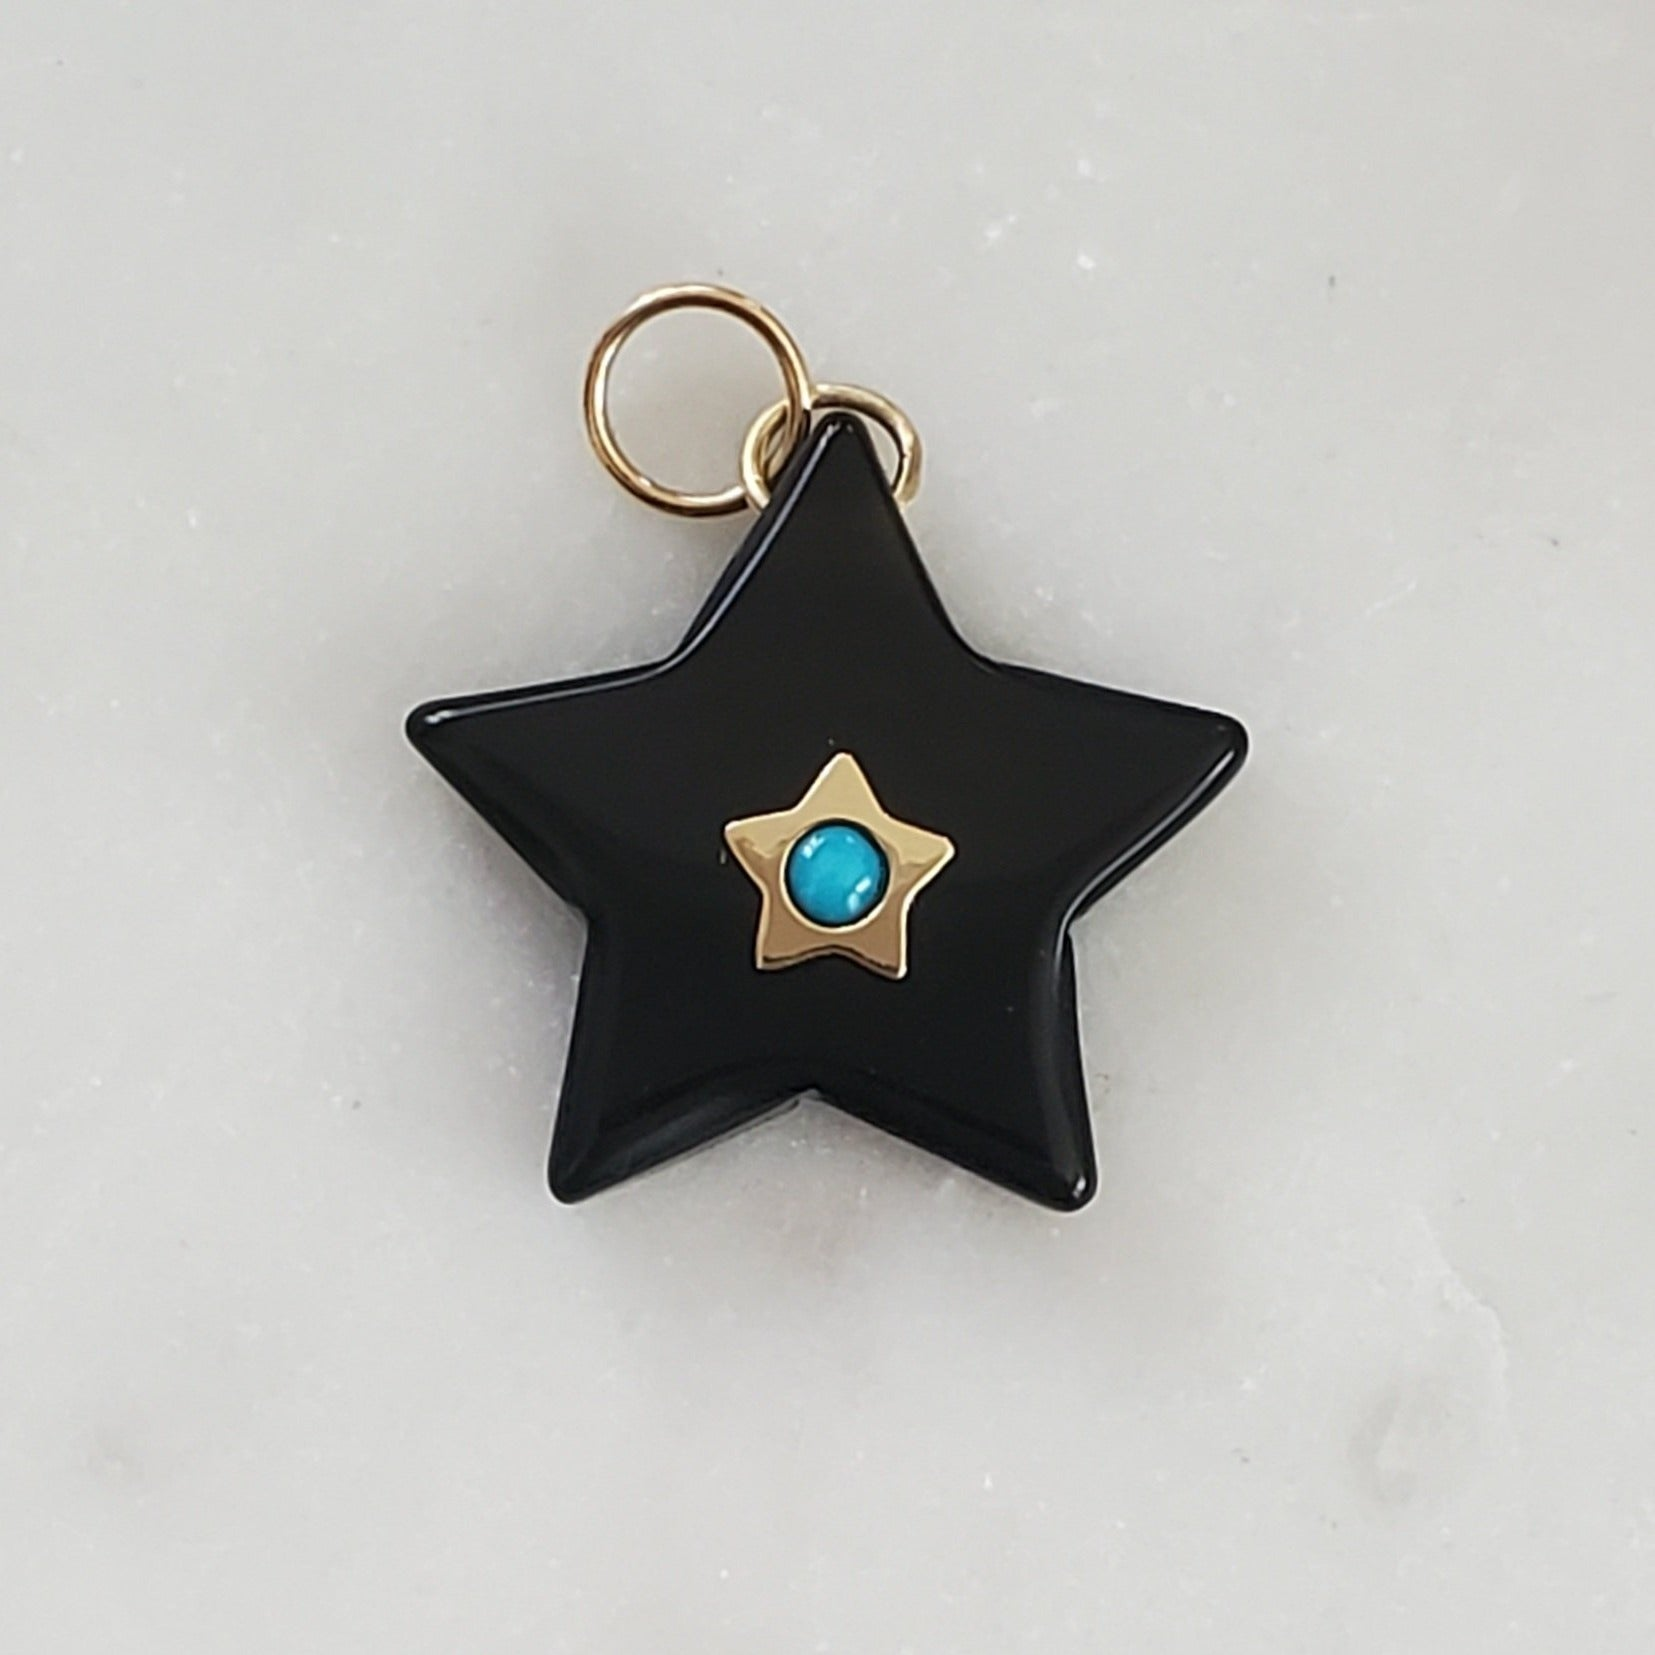 LUCKY☆STAR Black Onyx & Turquoise